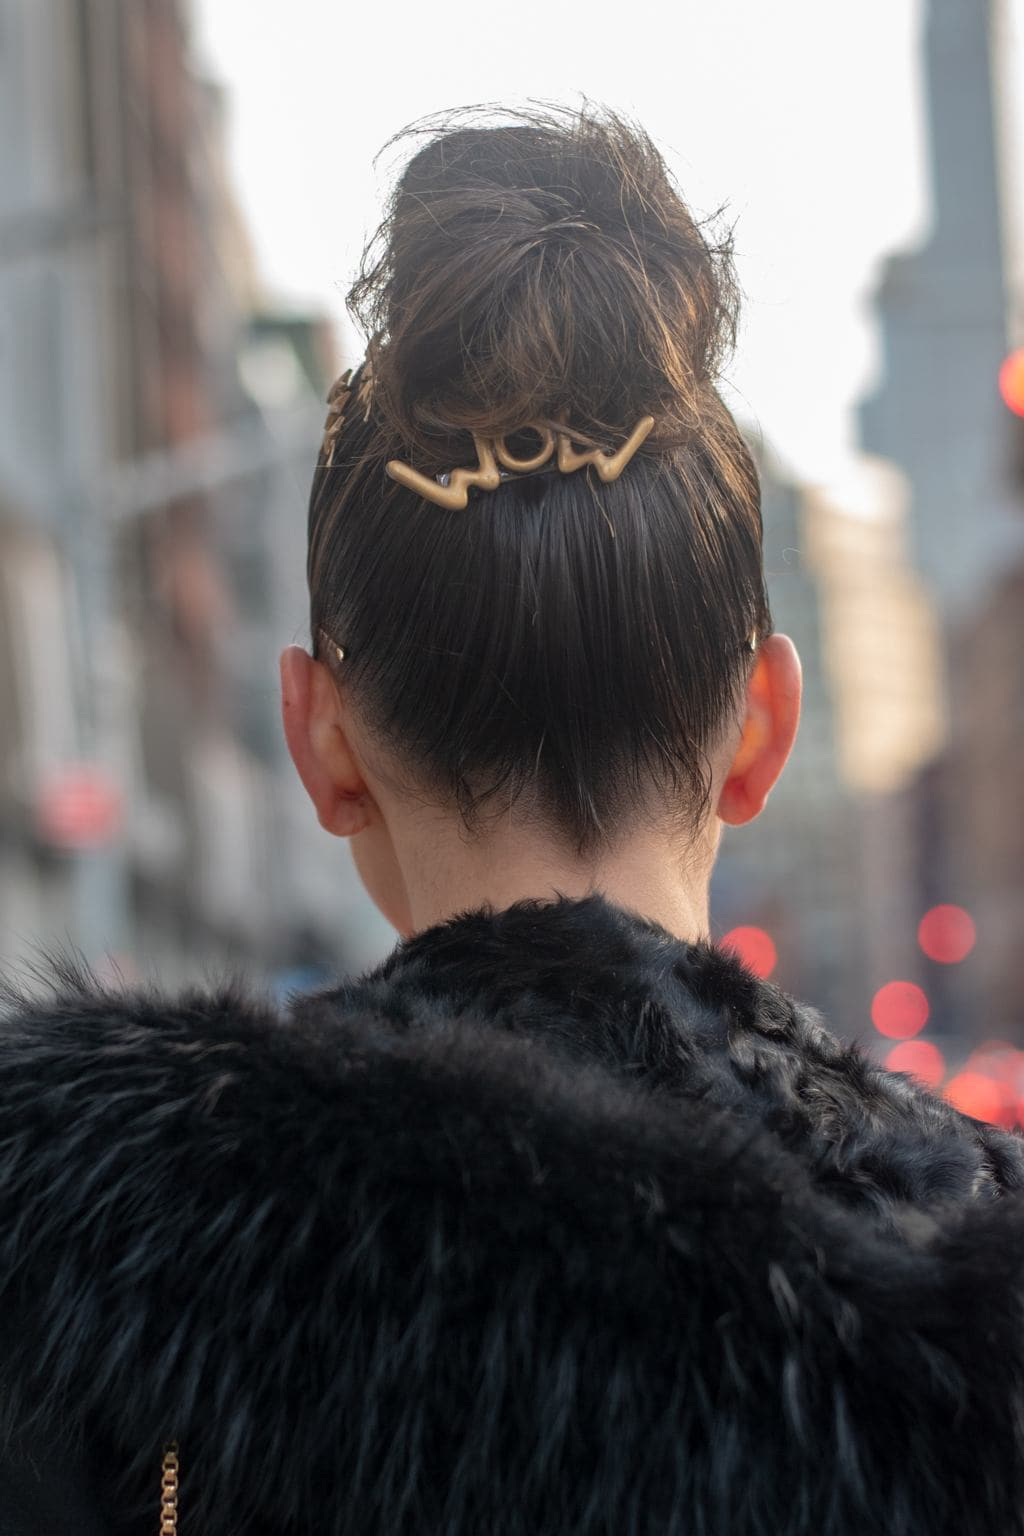 NYFW AW19 Street Style: Shot of woman with dark brown ballerina bun with wow statement slide, wearing black furry jacket